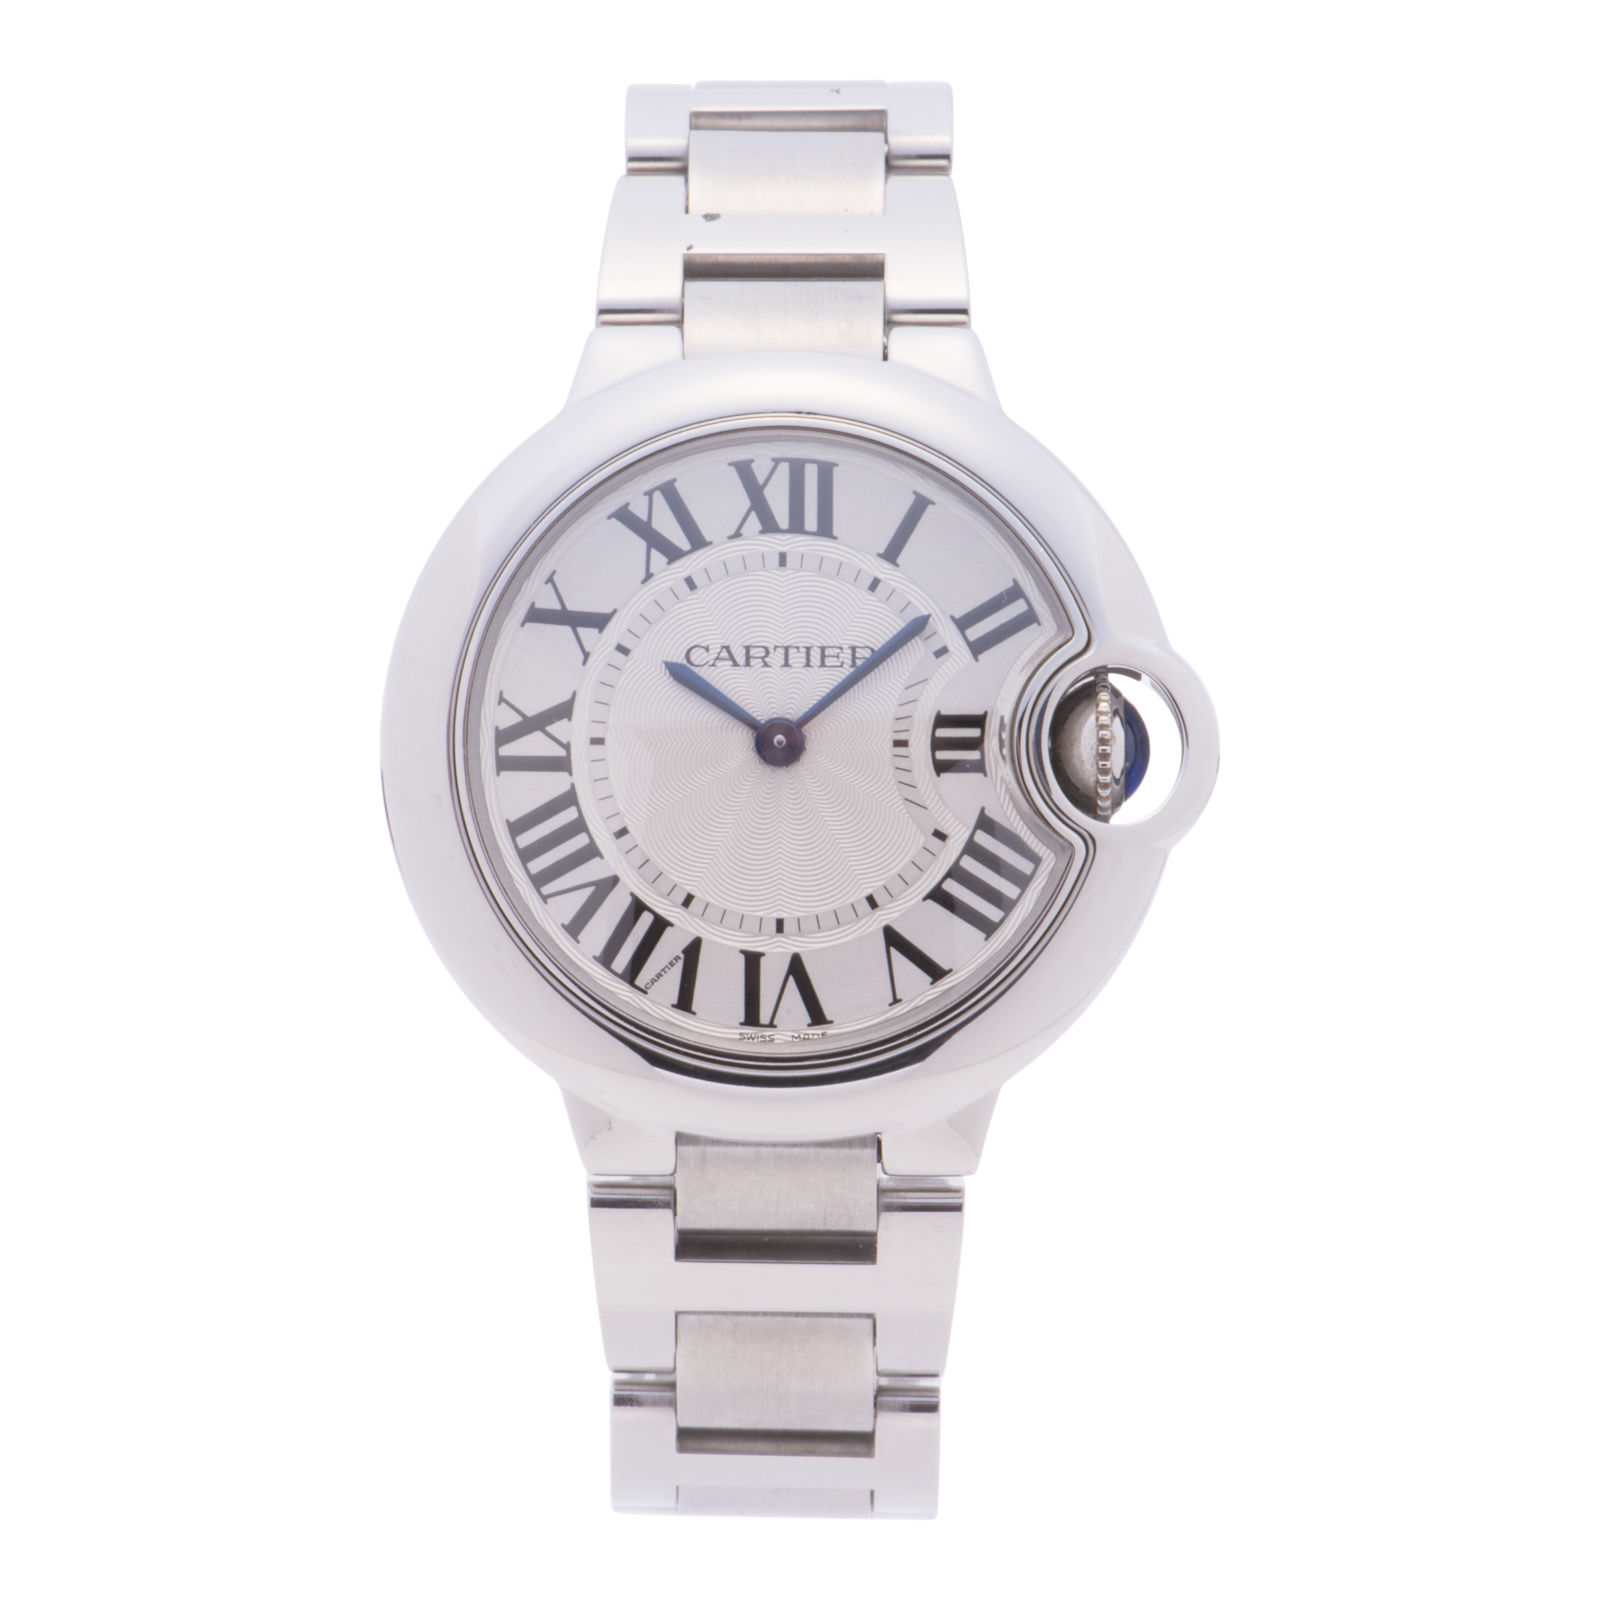 Cartier Ballon Bleu 3653 Stainless Steel 33 mm Mens Watch